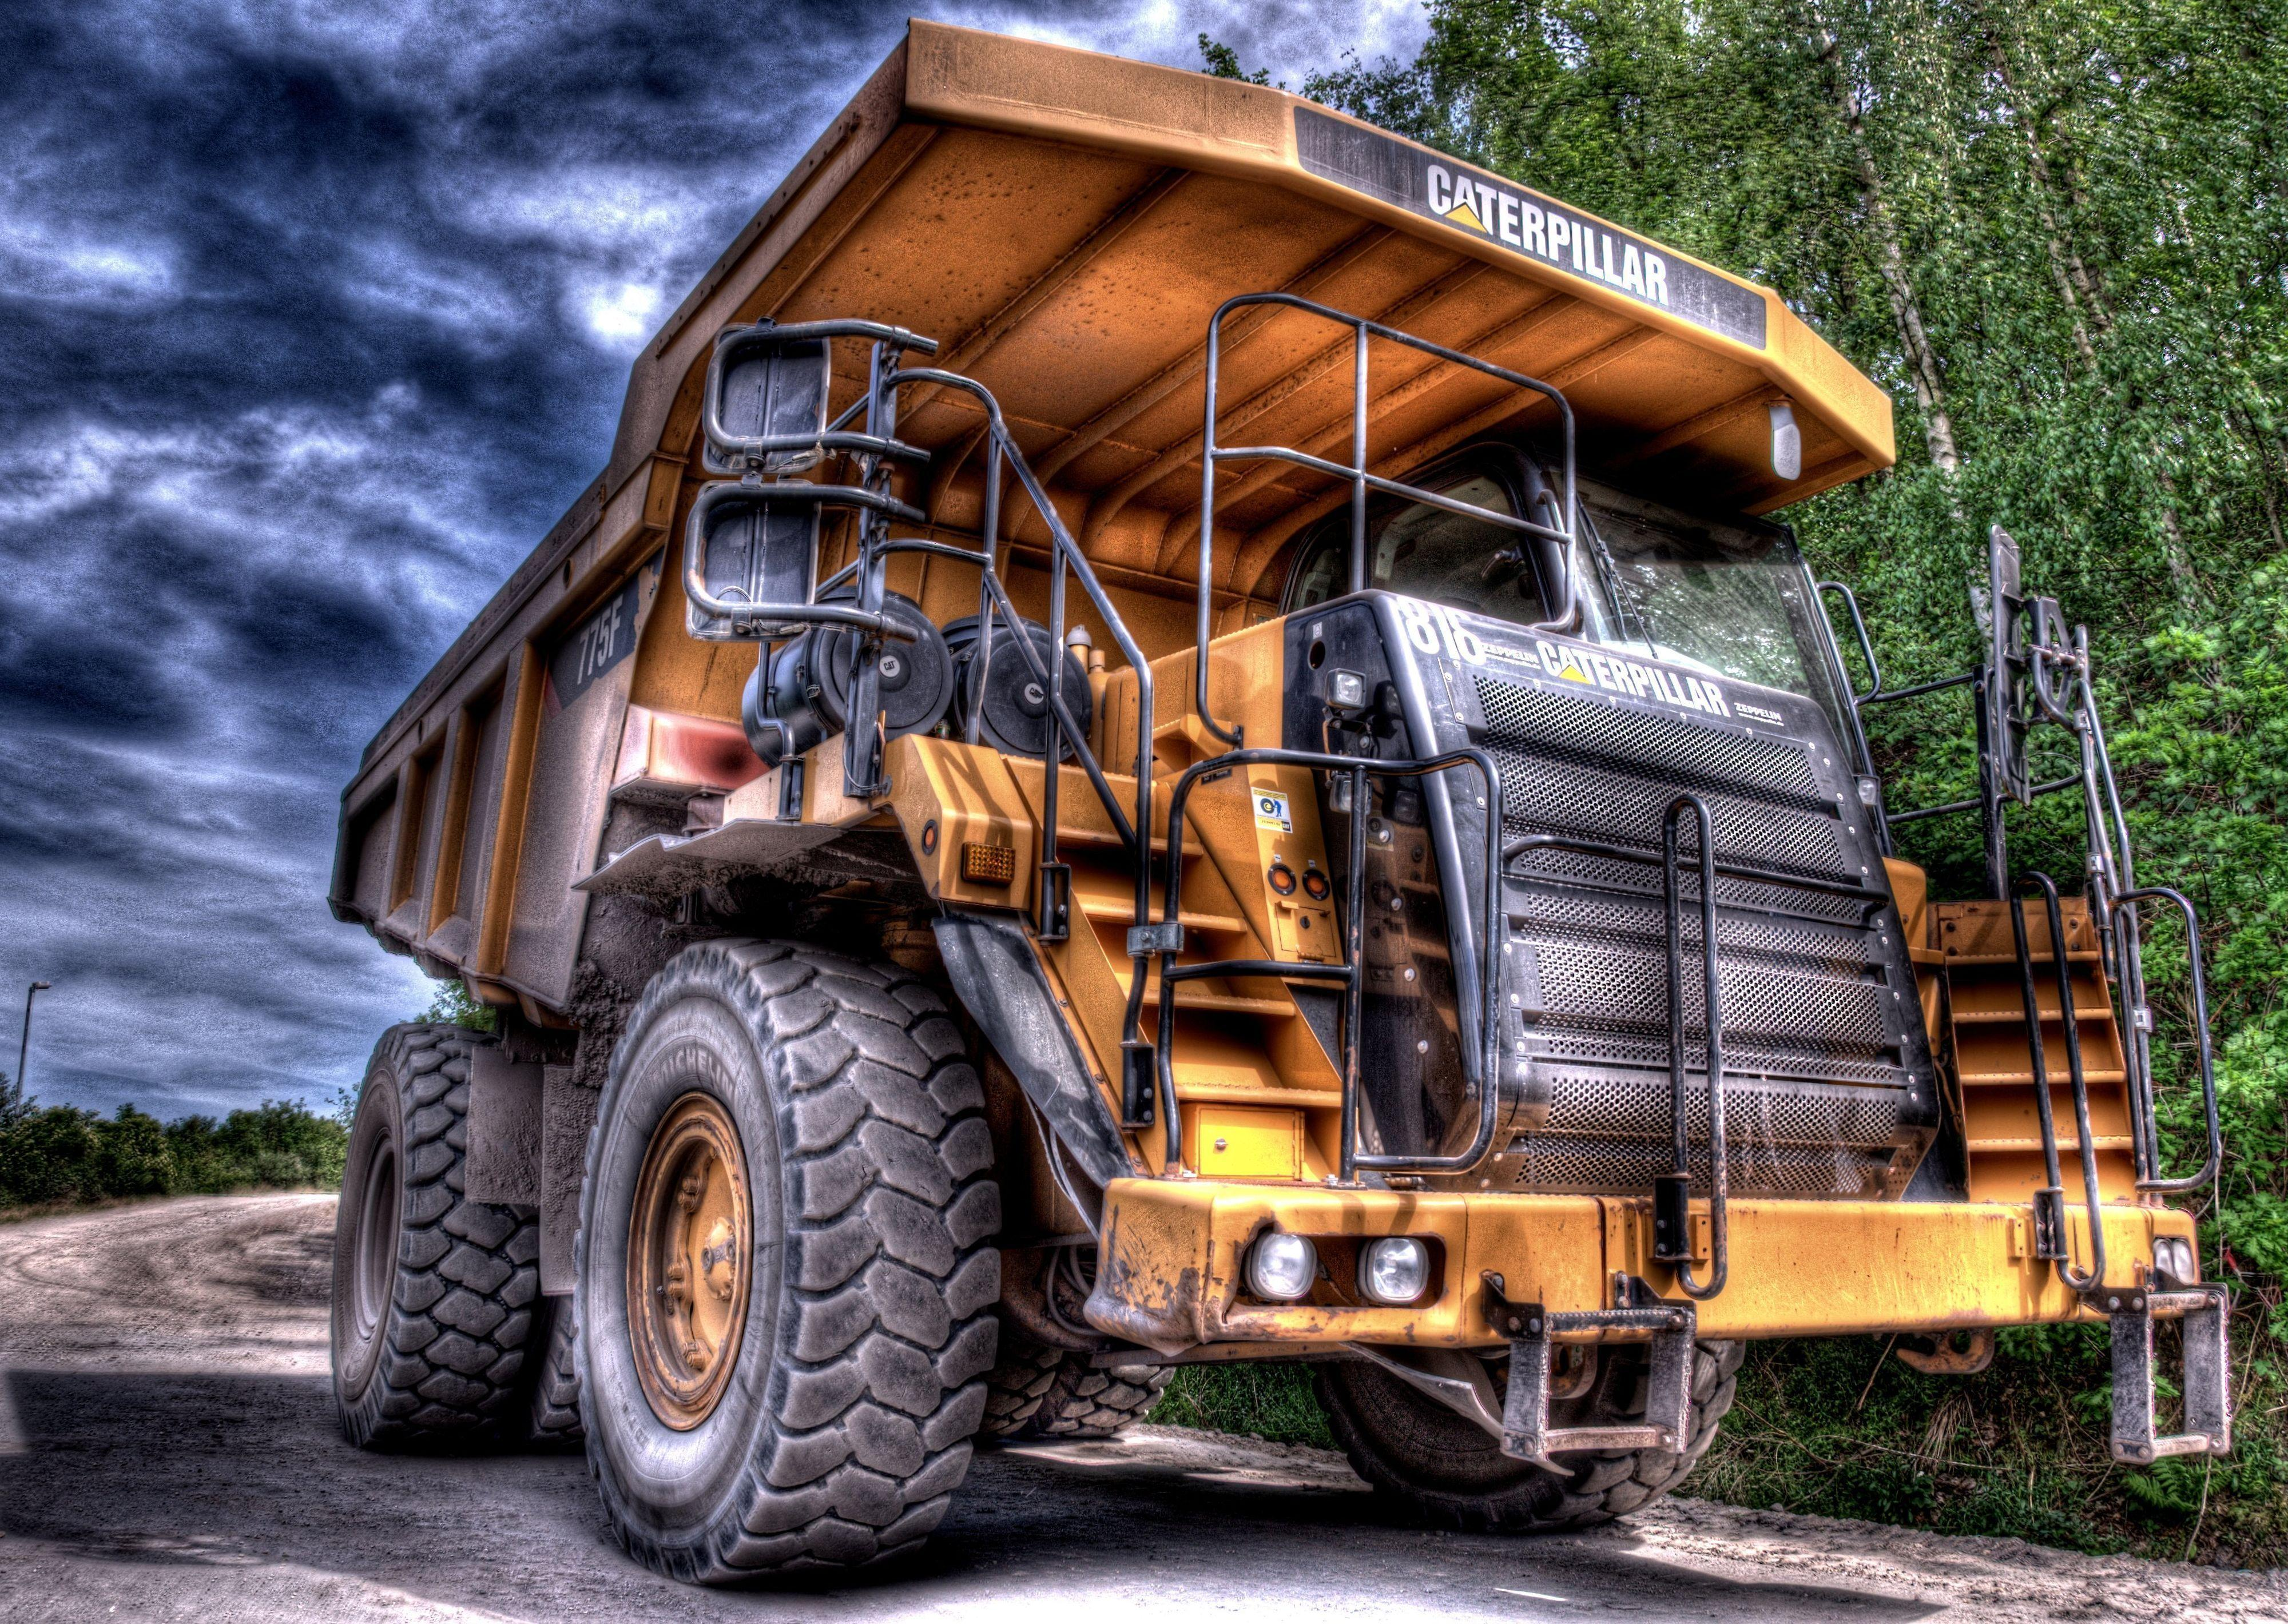 Full hd lorry and caterpillar wallpapers wallpaper cave - Mining images hd ...